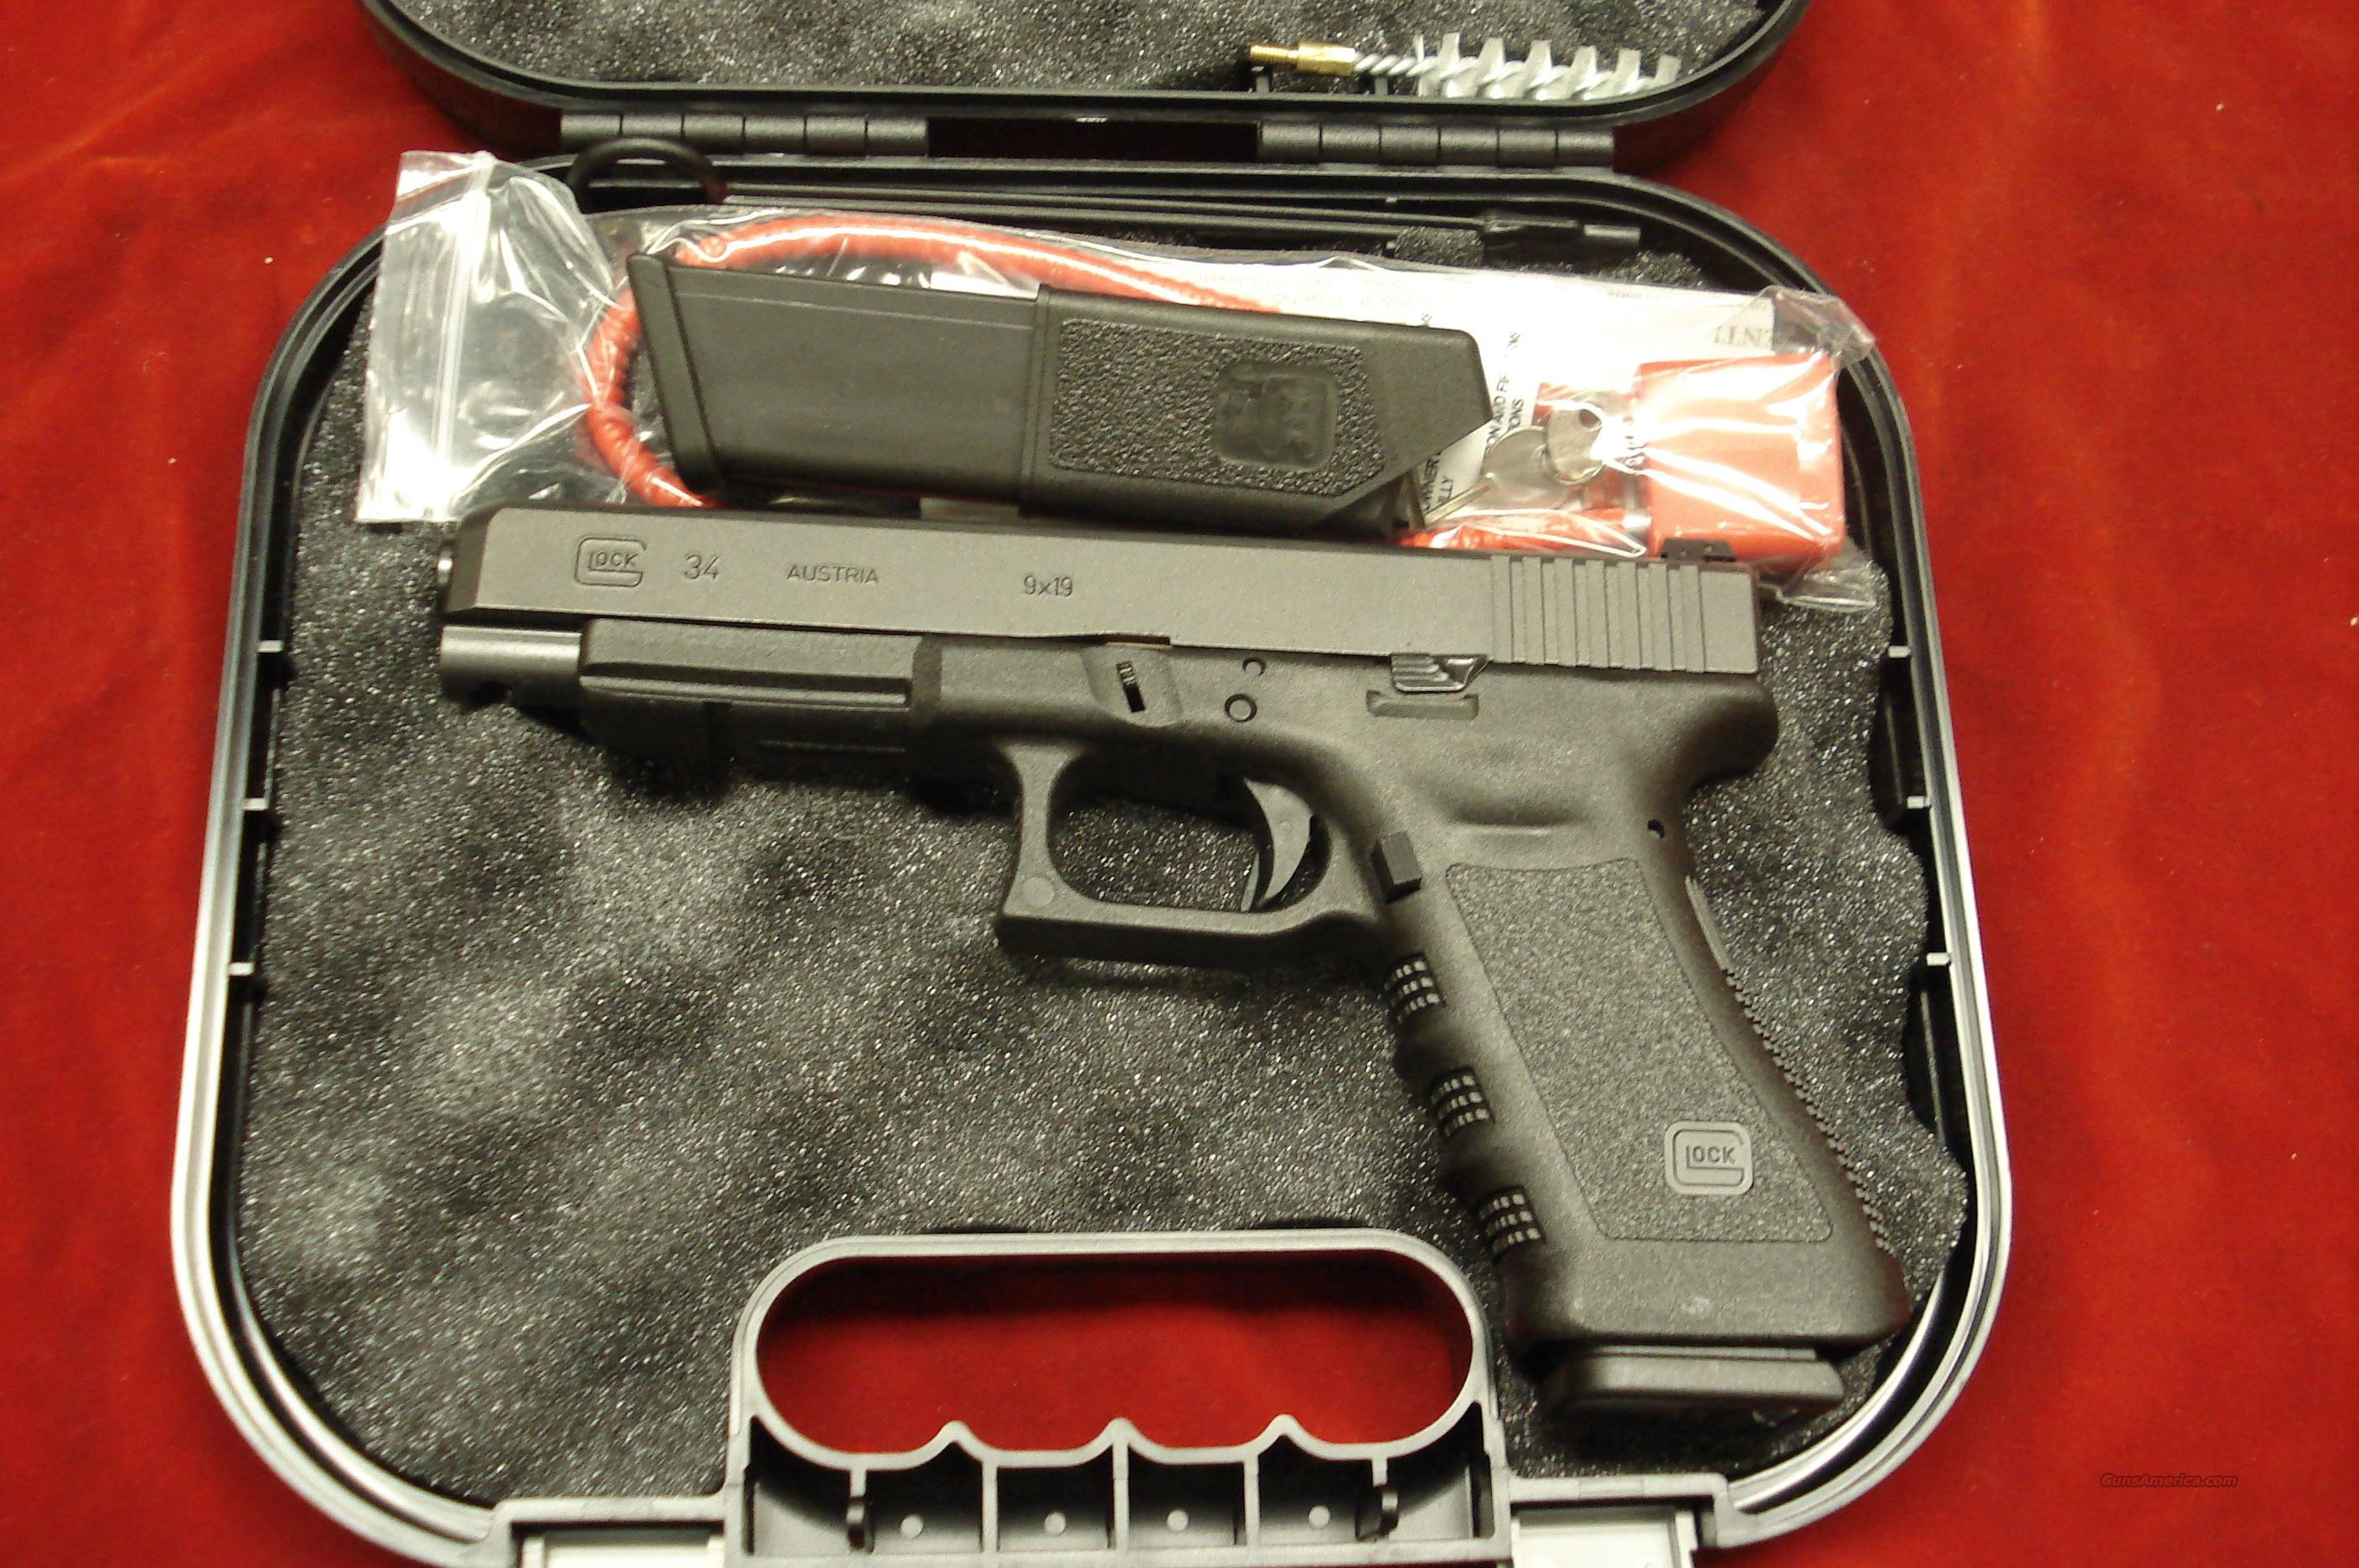 GLOCK MODEL 34 GEN3 9MM TACTICAL/PRACTICAL NEW  Guns > Pistols > Glock Pistols > 17